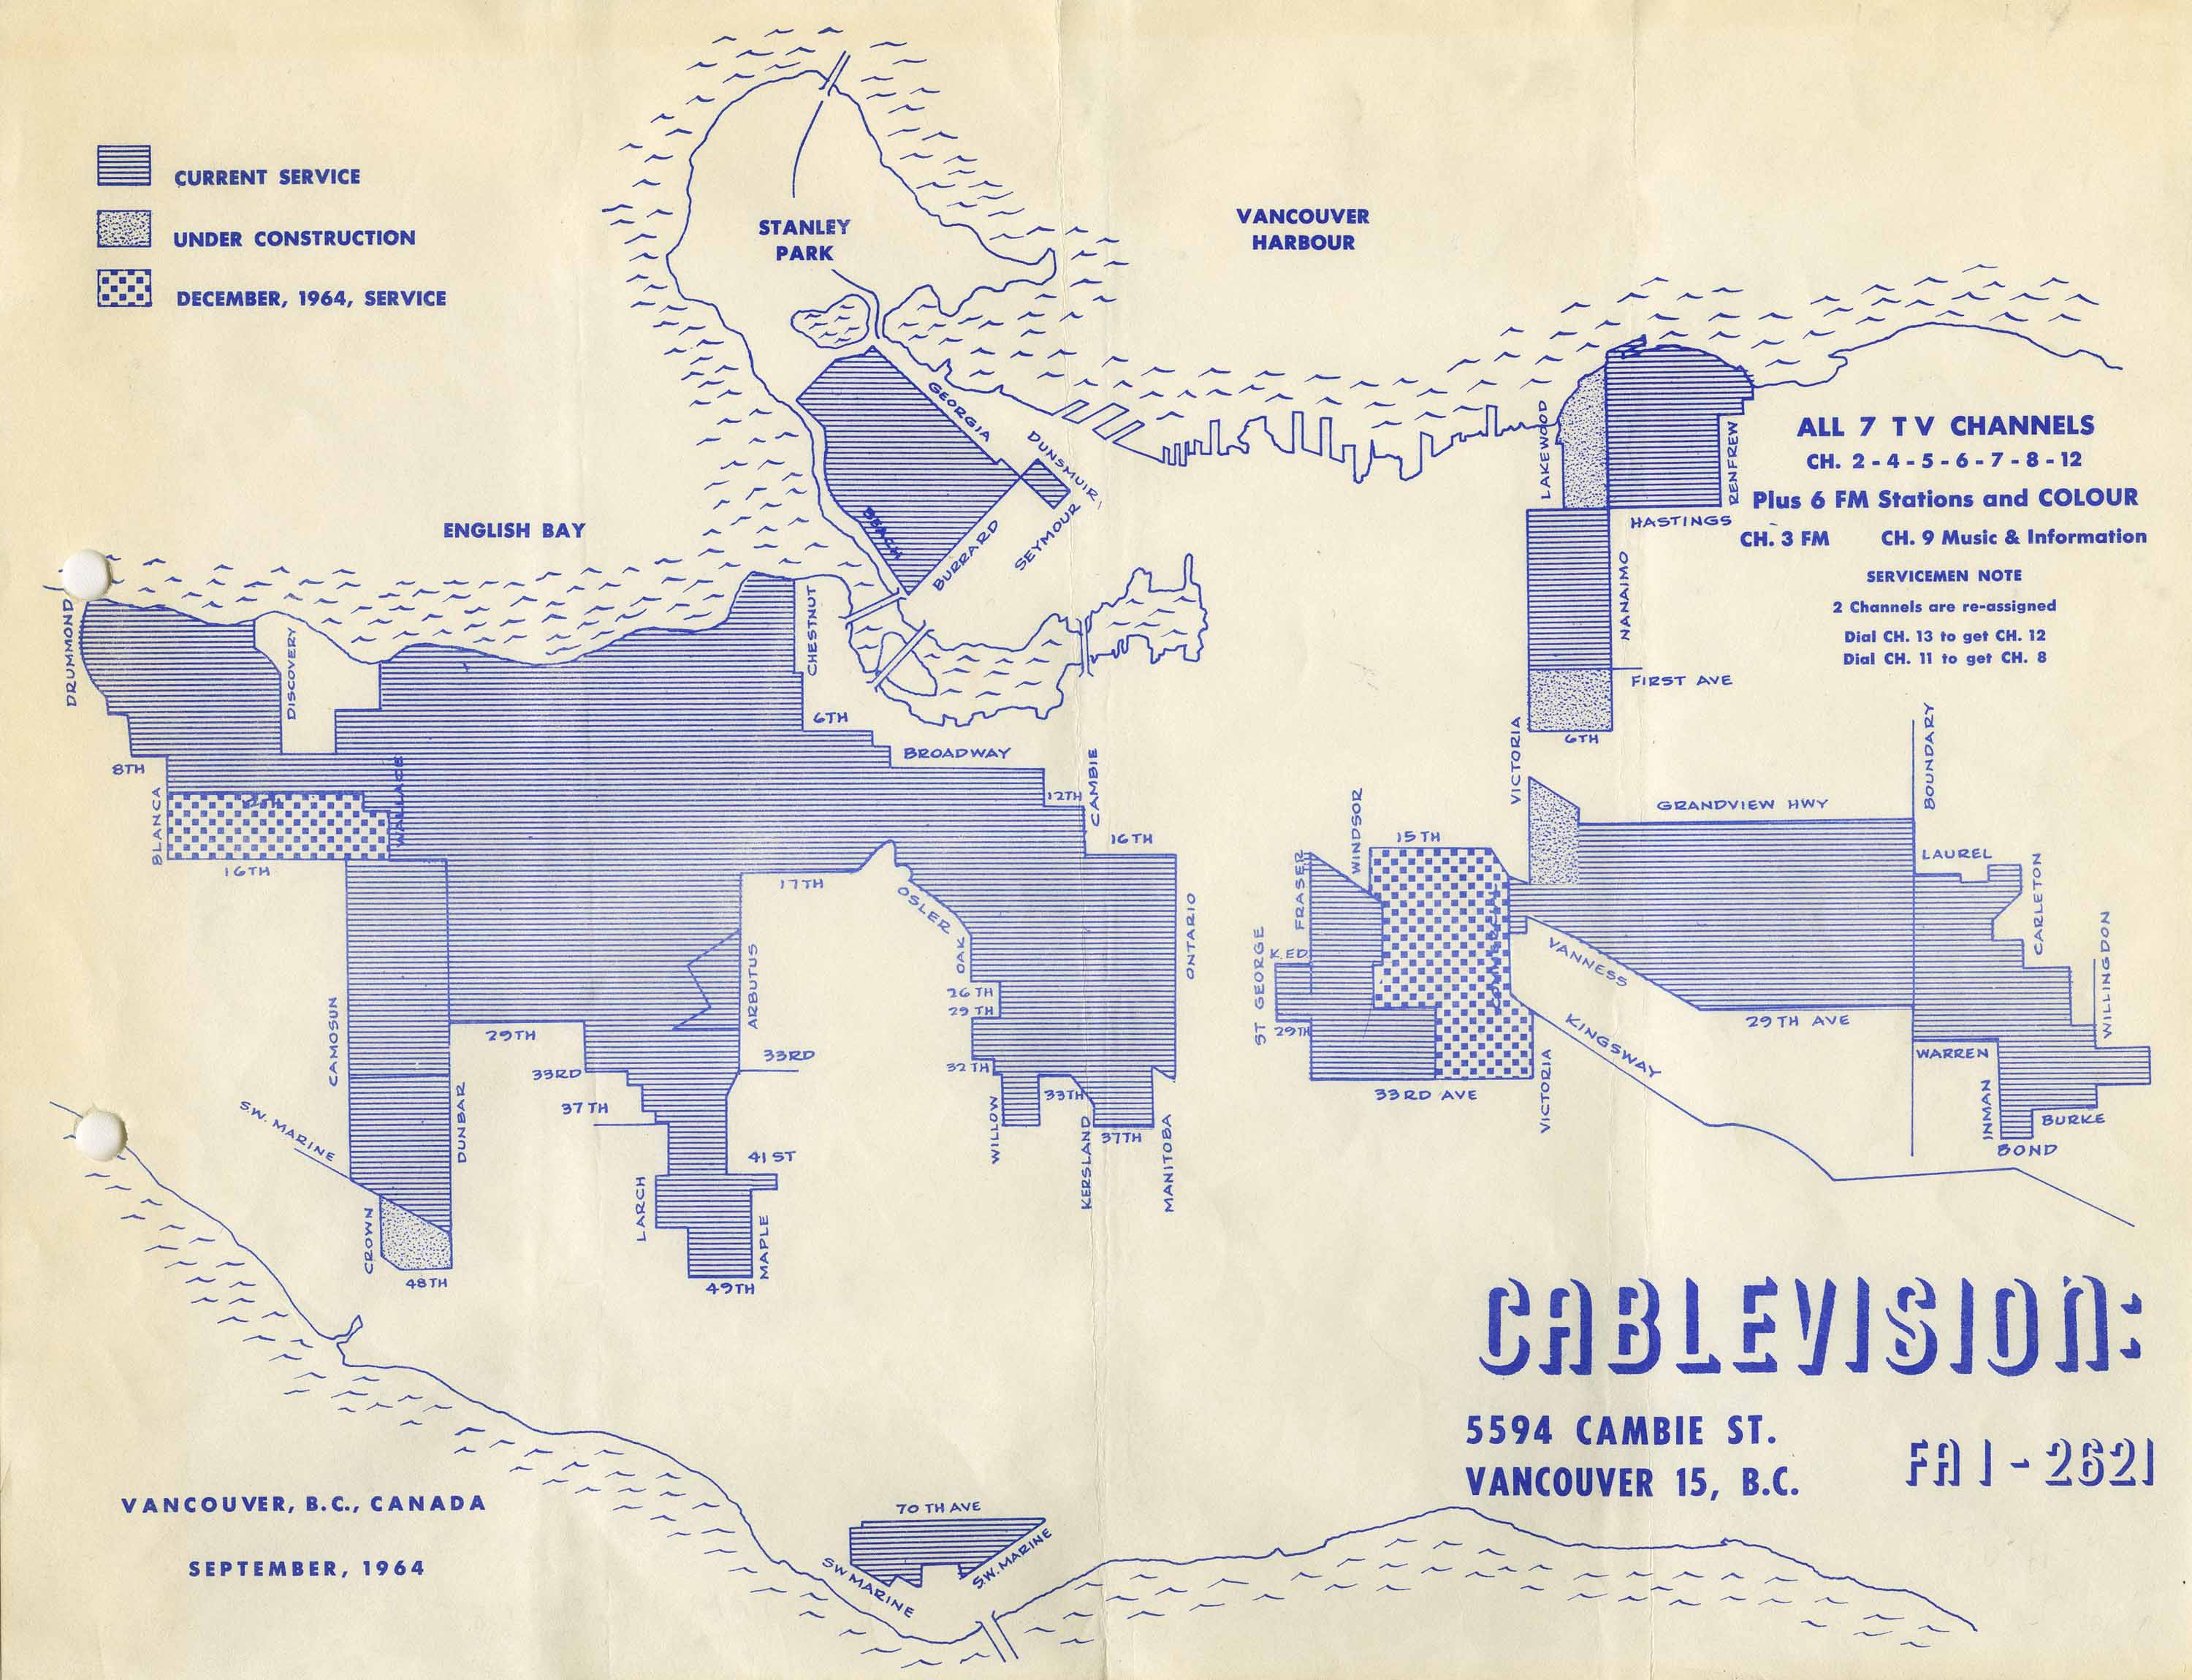 Cablevision : Vancouver, B.C., Canada, September, 1964. Reference code AM1519-: PAM 1964-185